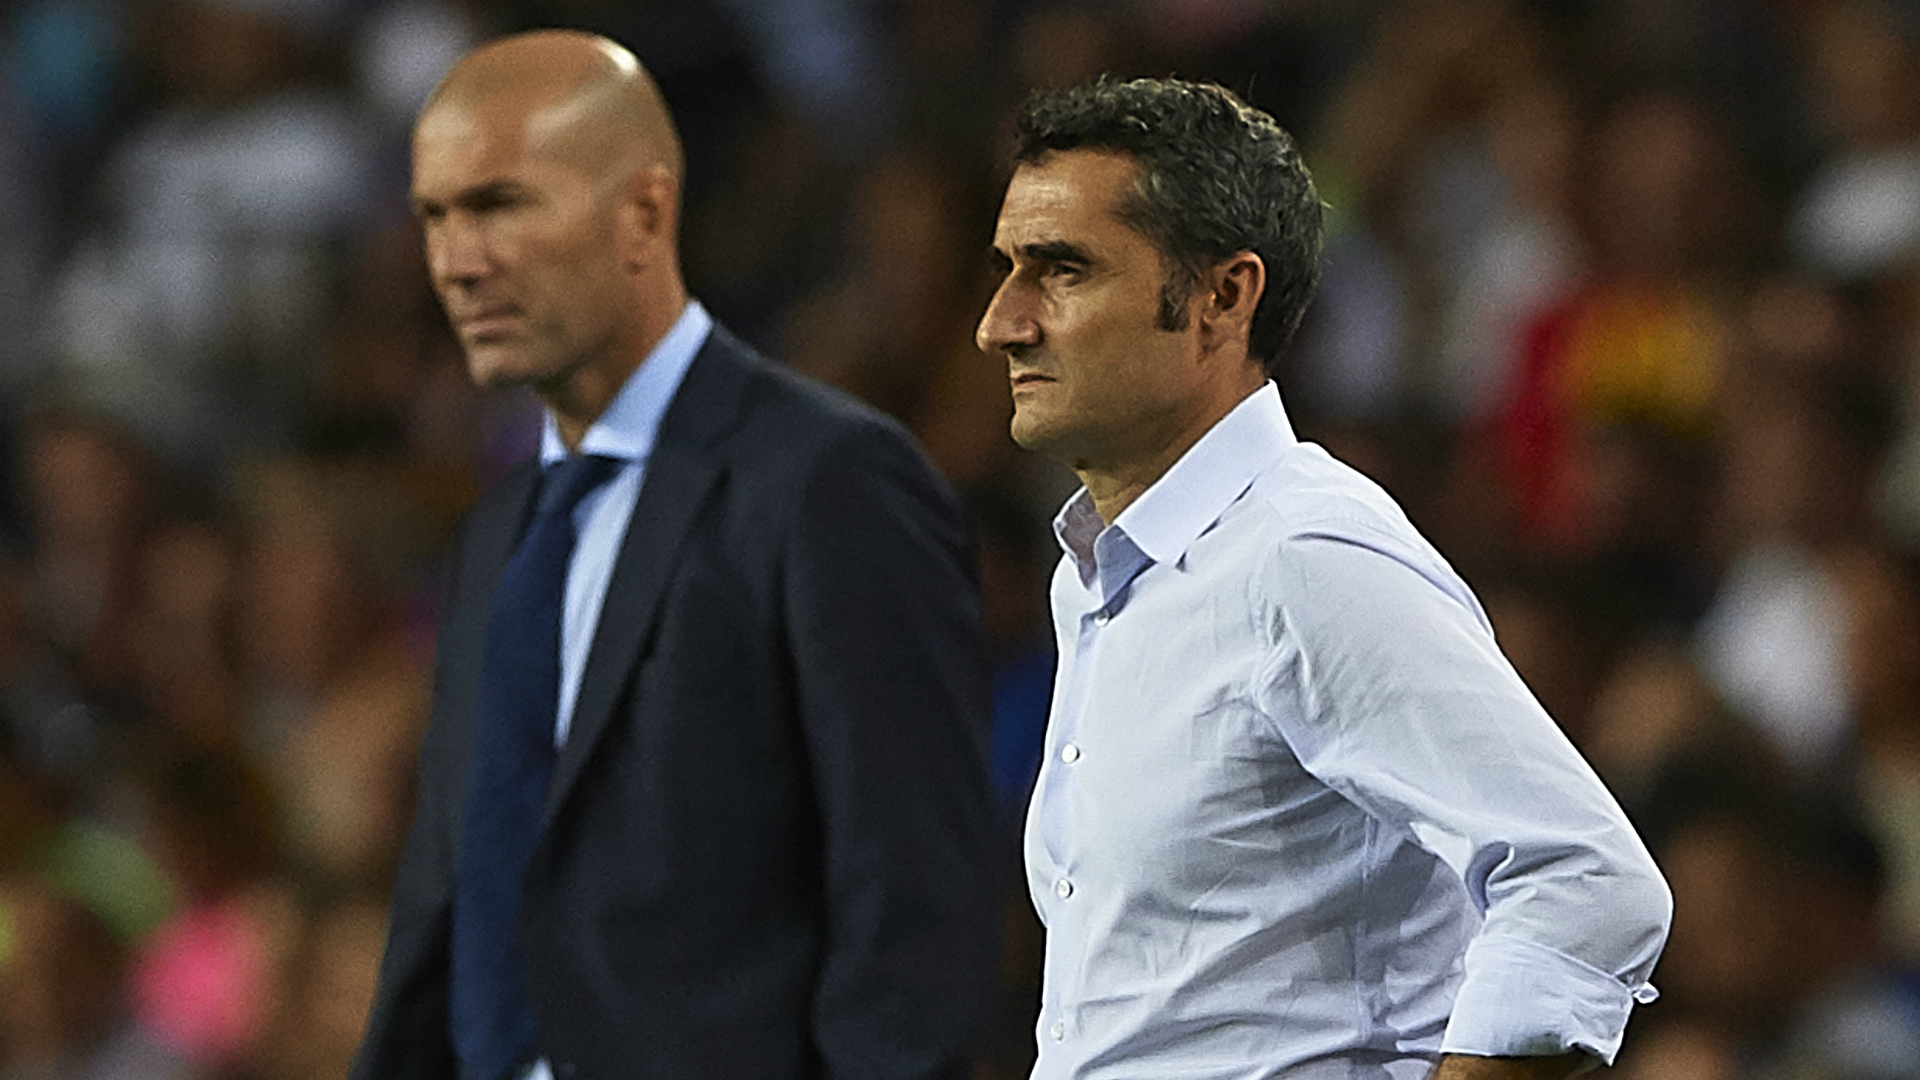 Valverde: Madrid aren´t invincible as Barca boss laments Neymar loss